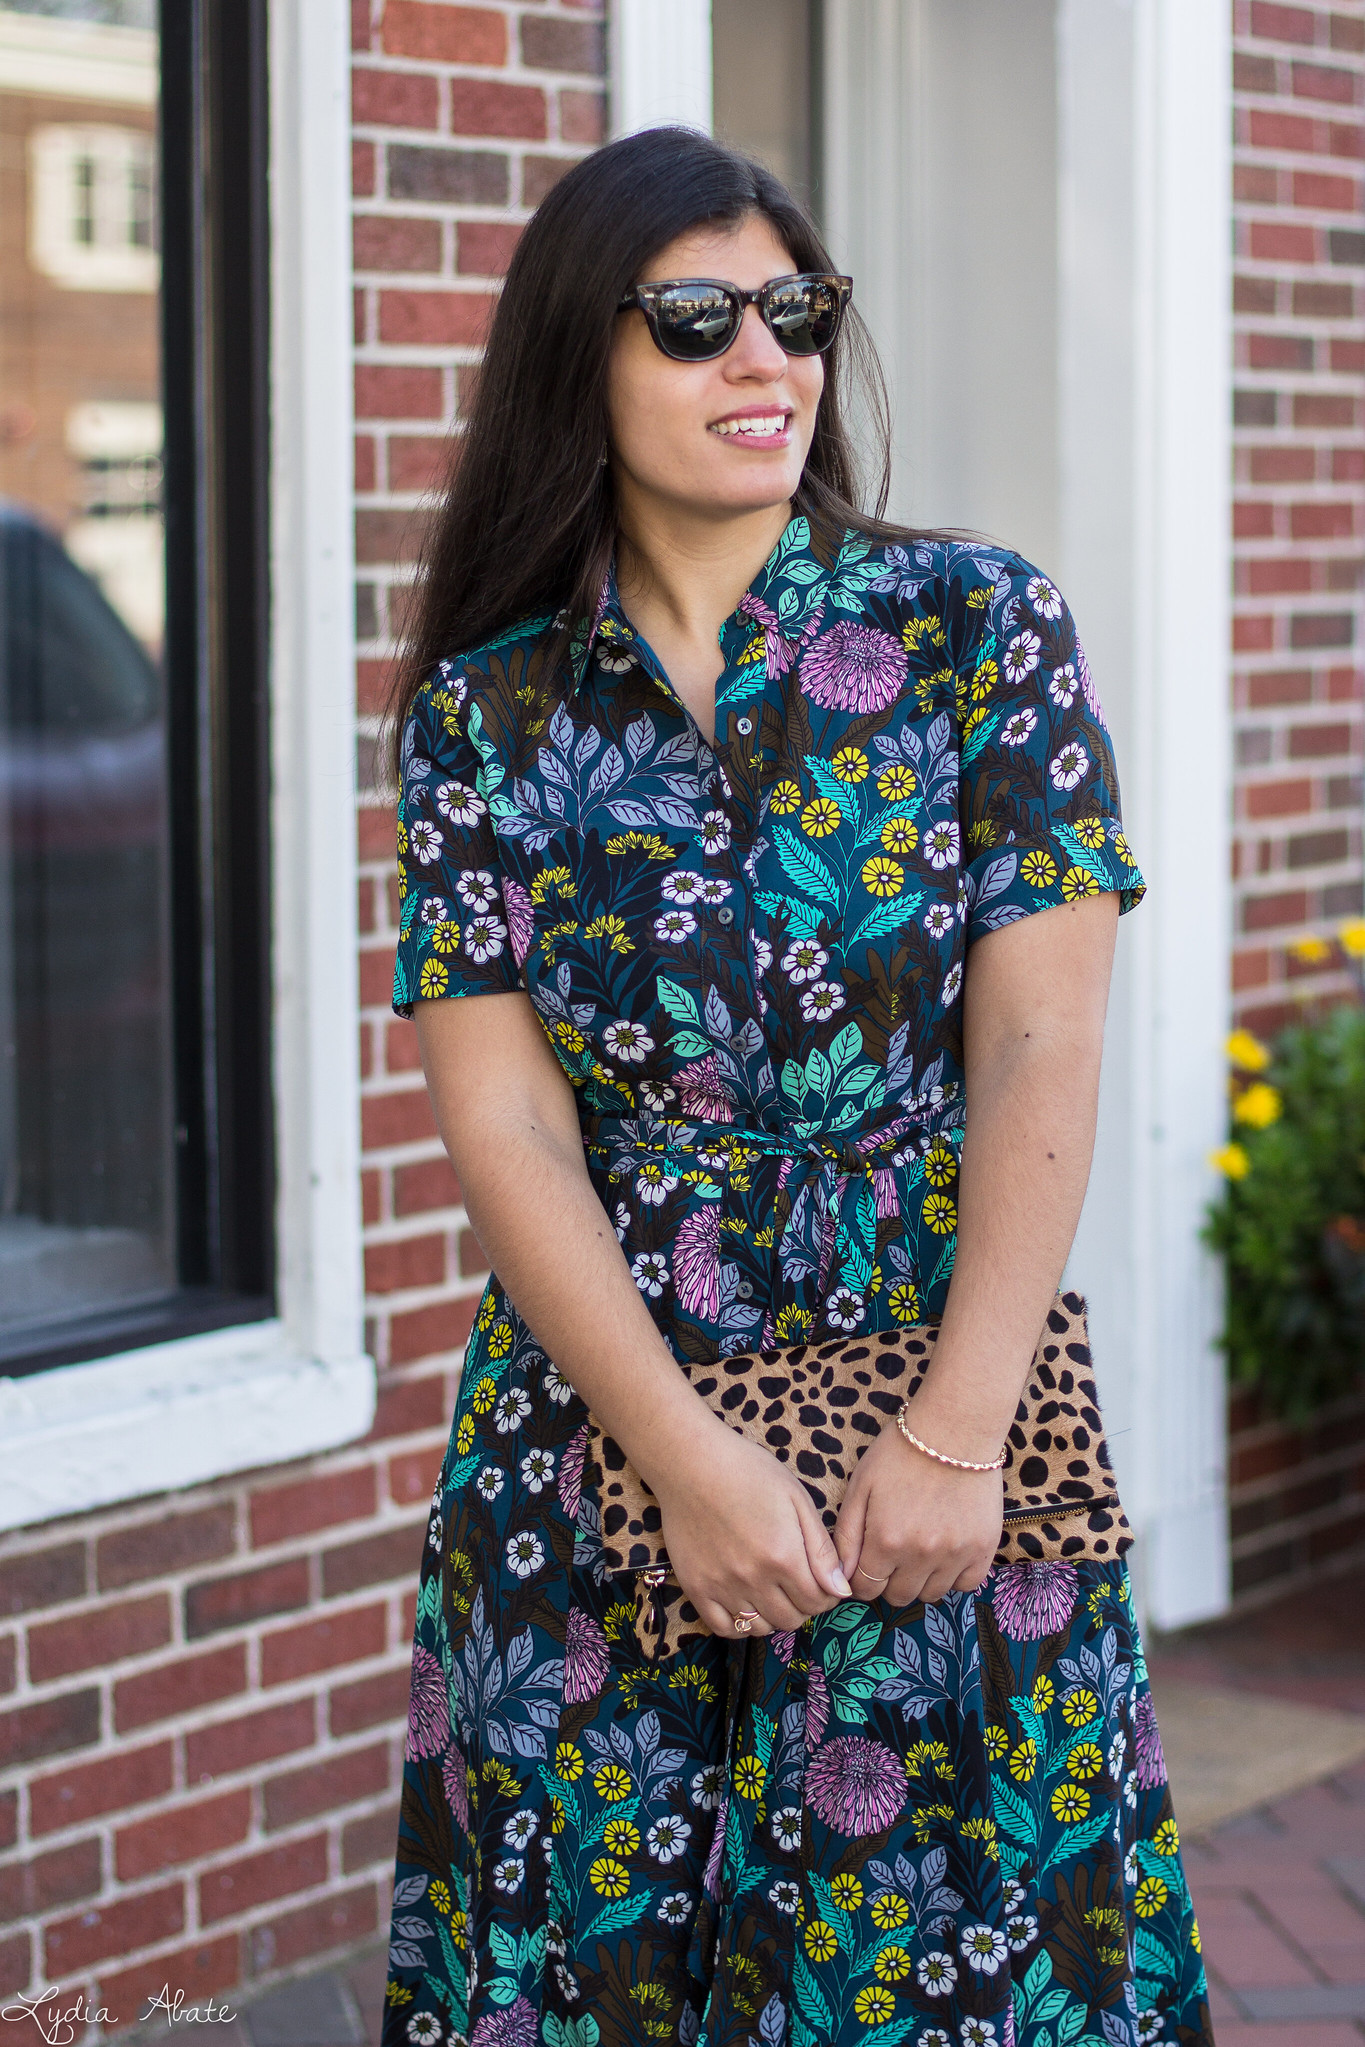 J.Crew X Abigail Borg shirtdress, leopard clutch, coach pumps-14.jpg